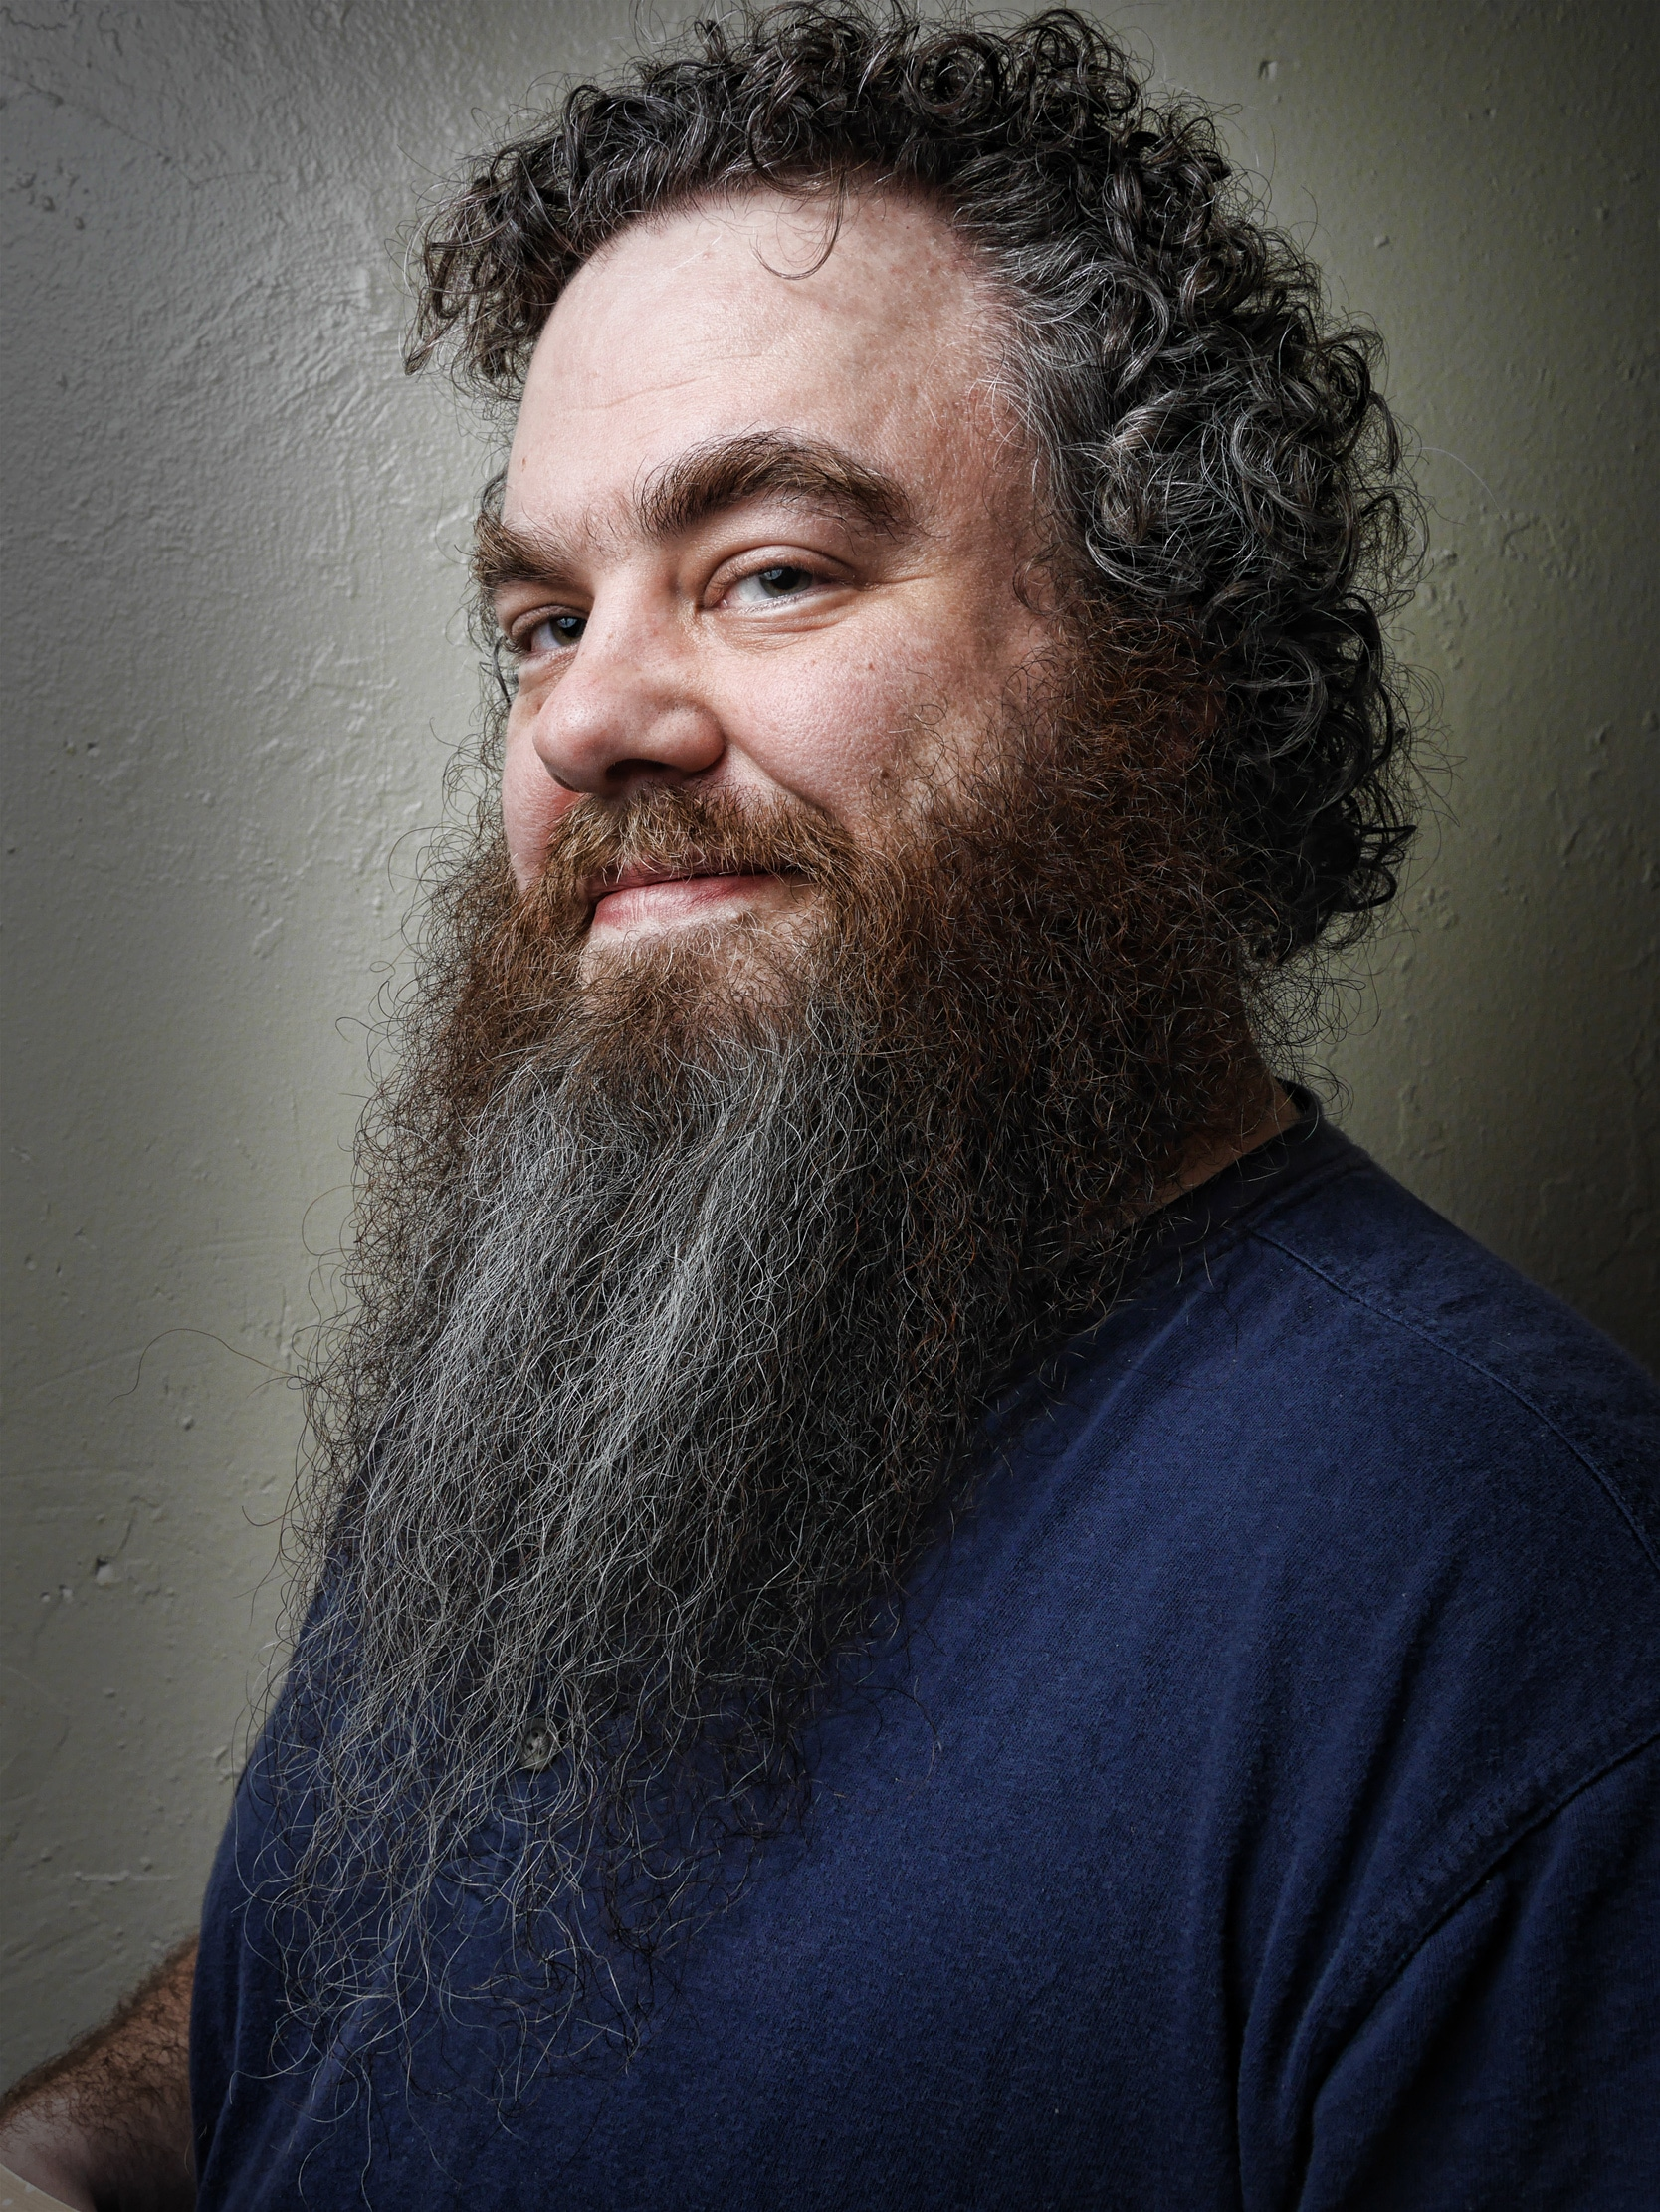 image of Patrick Rothfuss of Acquisitions, Inc. | TheGeekPages.com